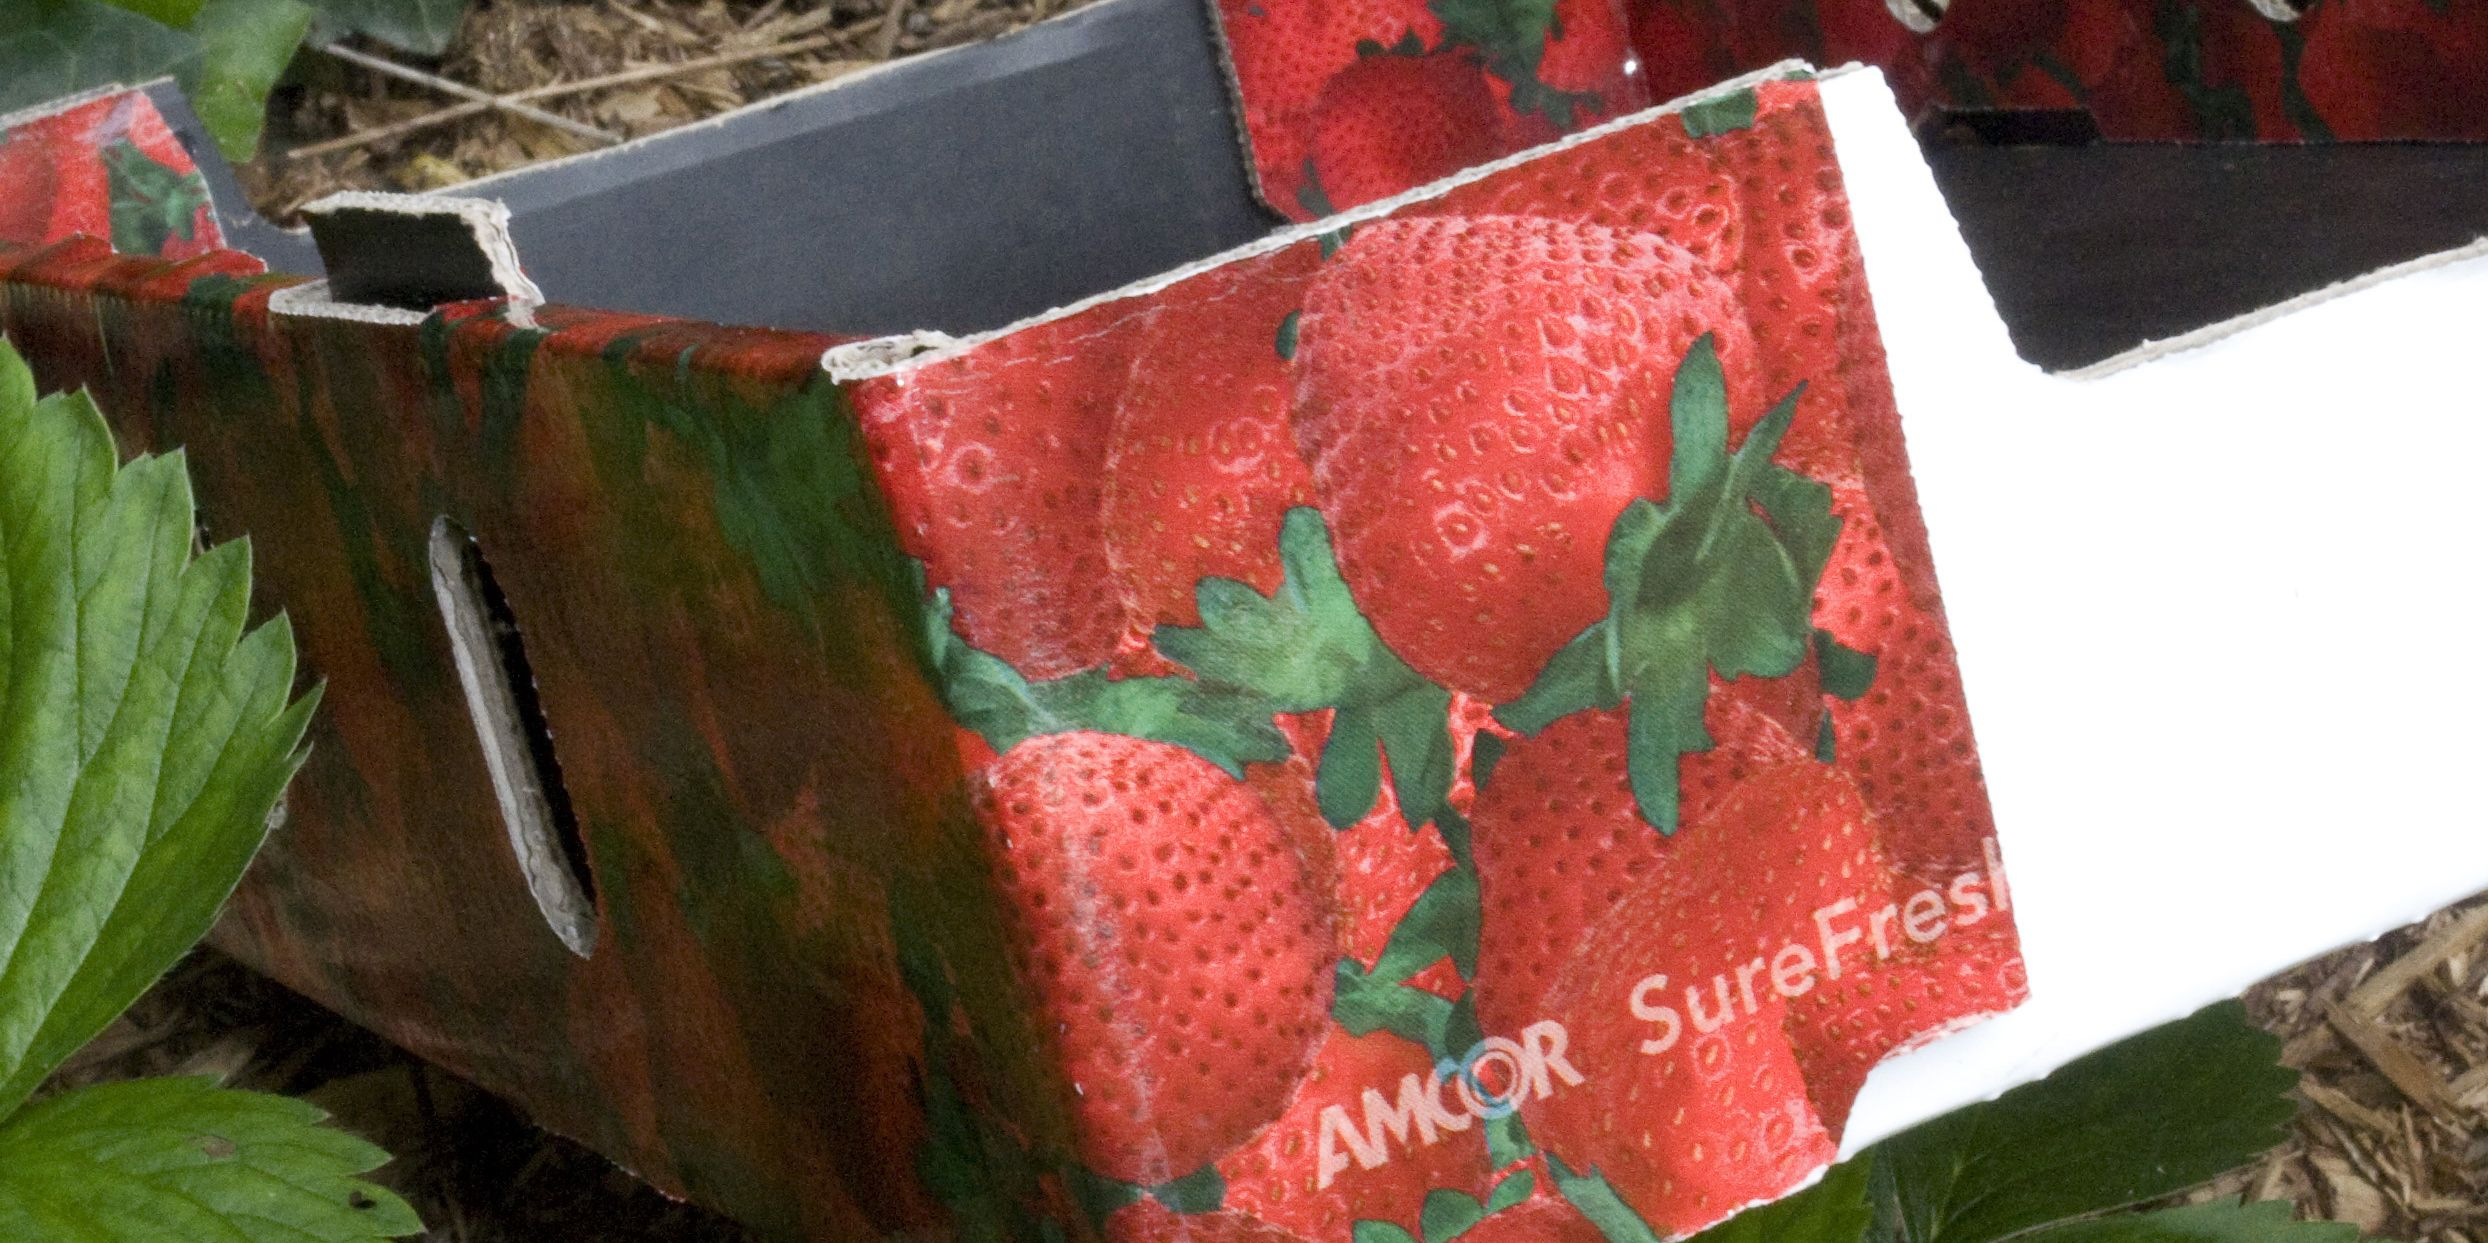 Sustainable Fruit Packaging